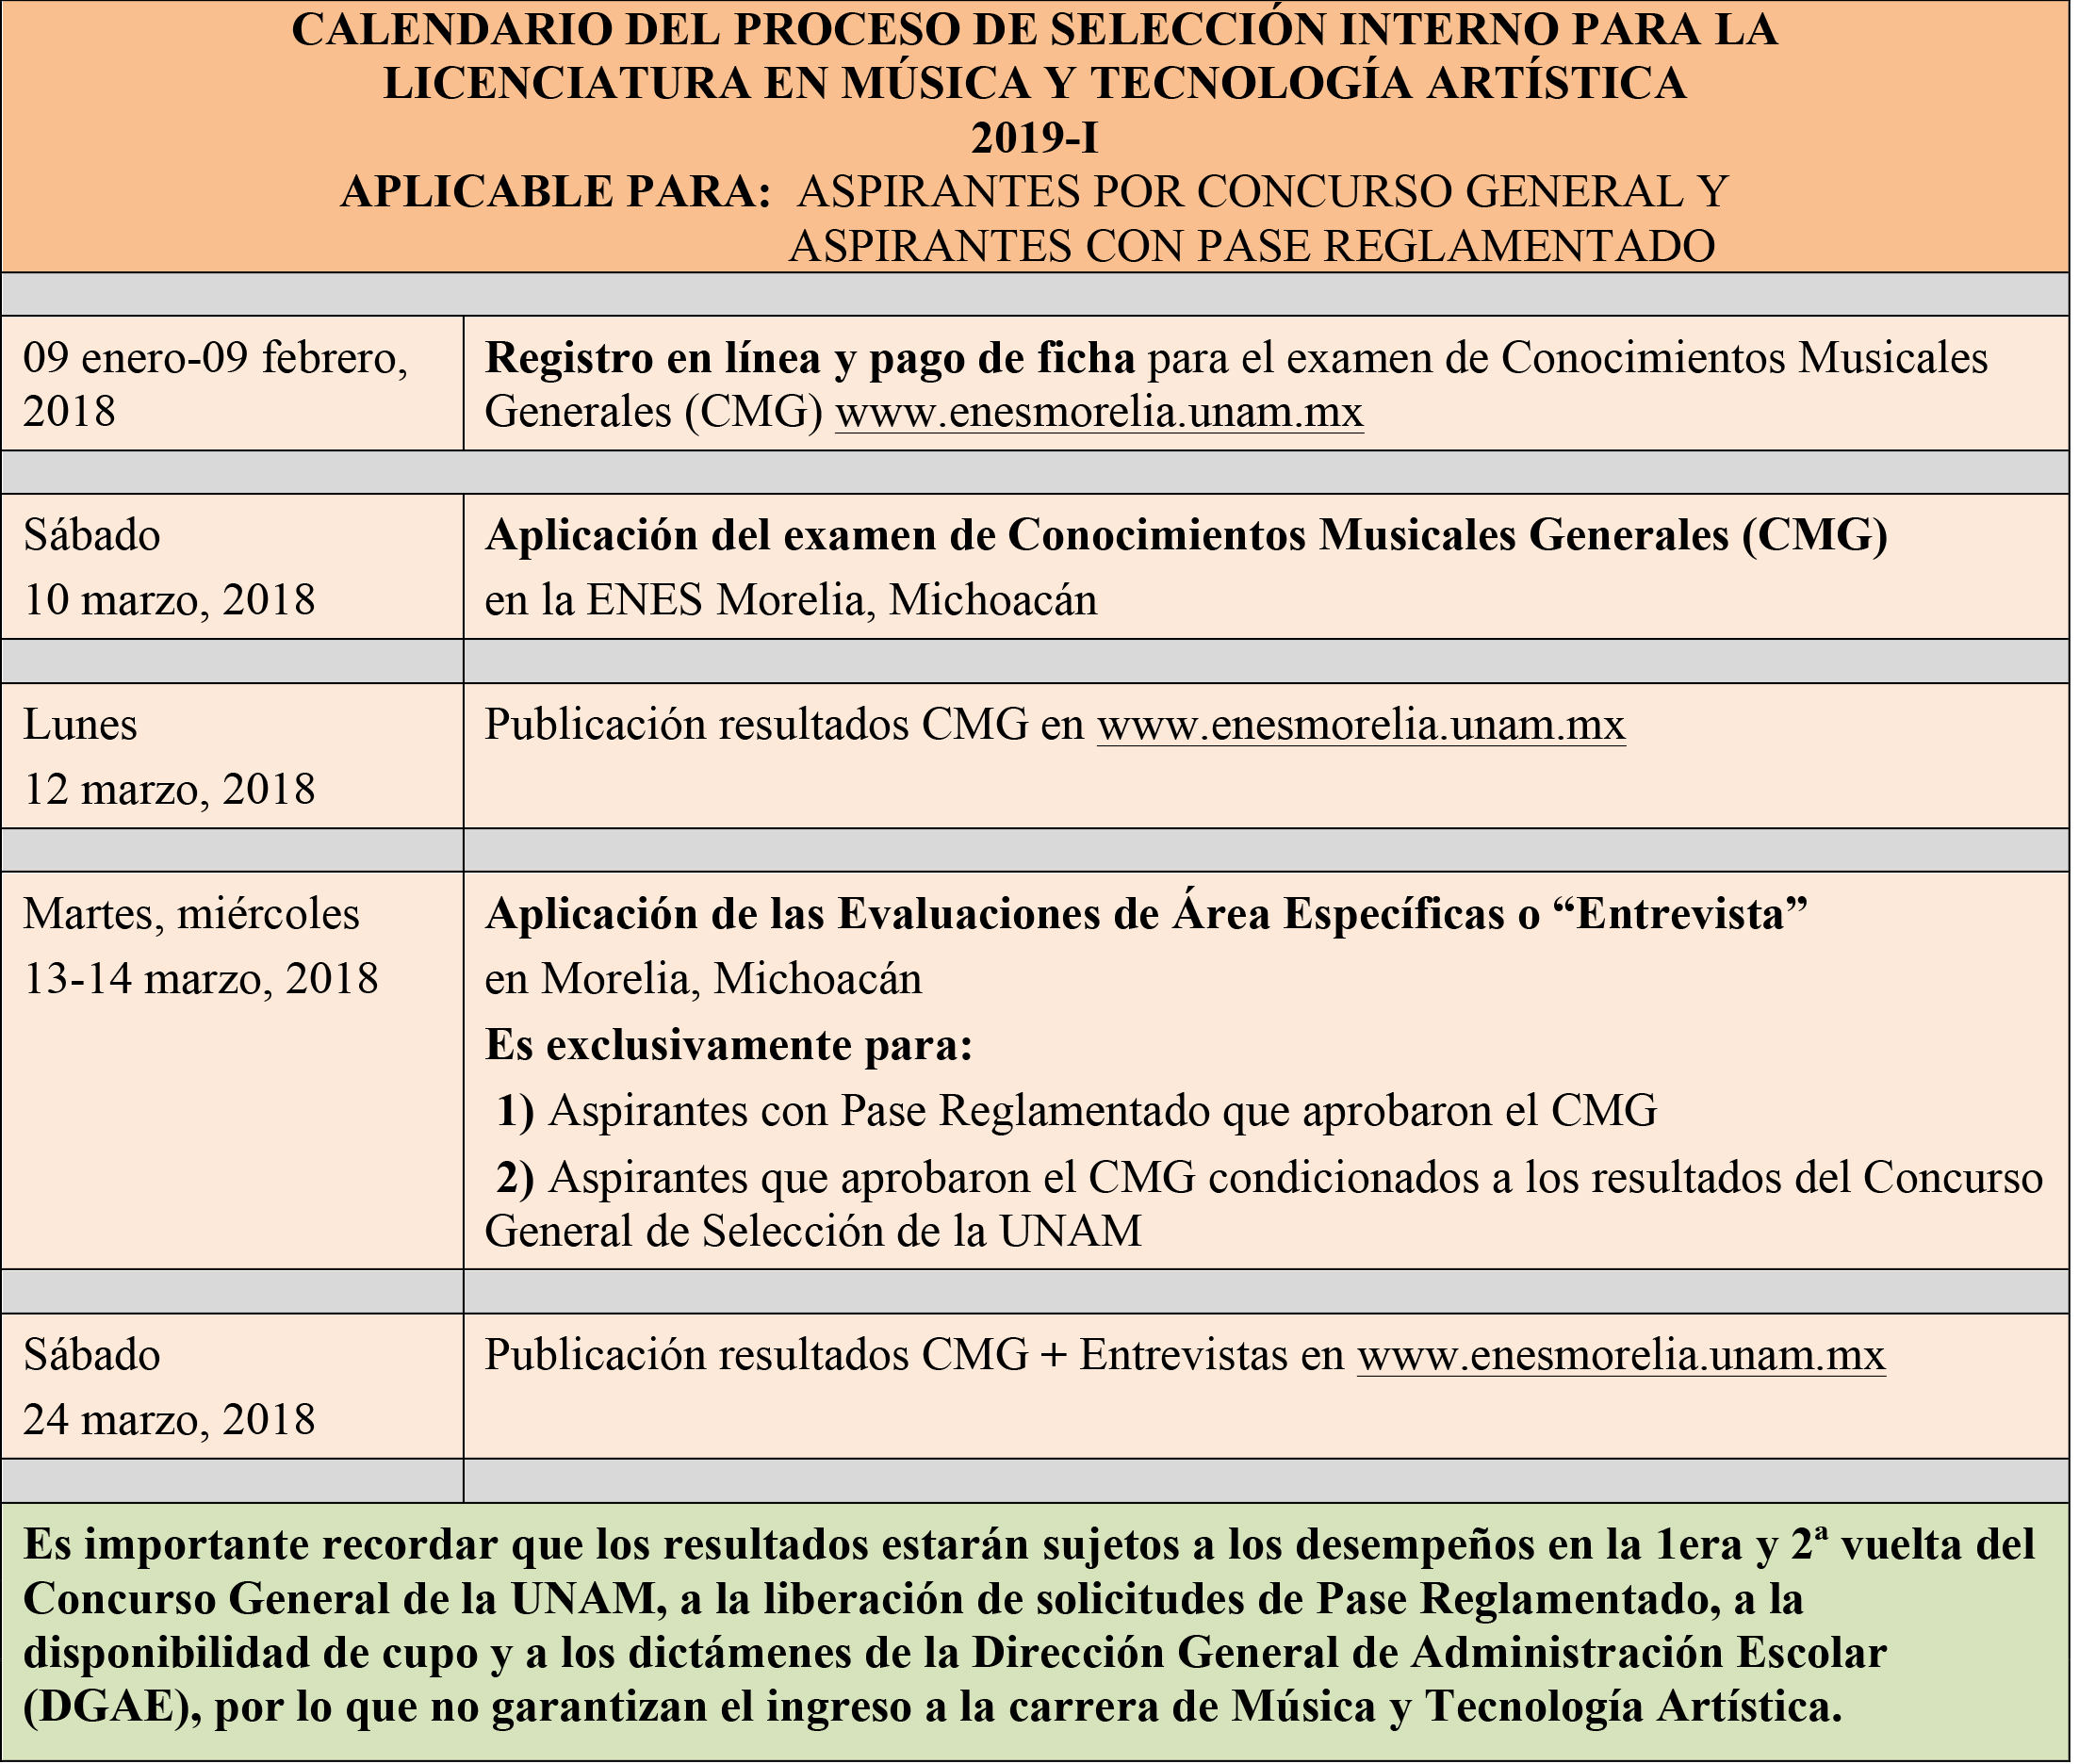 Microsoft Word - Convocatoria MyTA 2019-1_VF_17 nov (1).doc